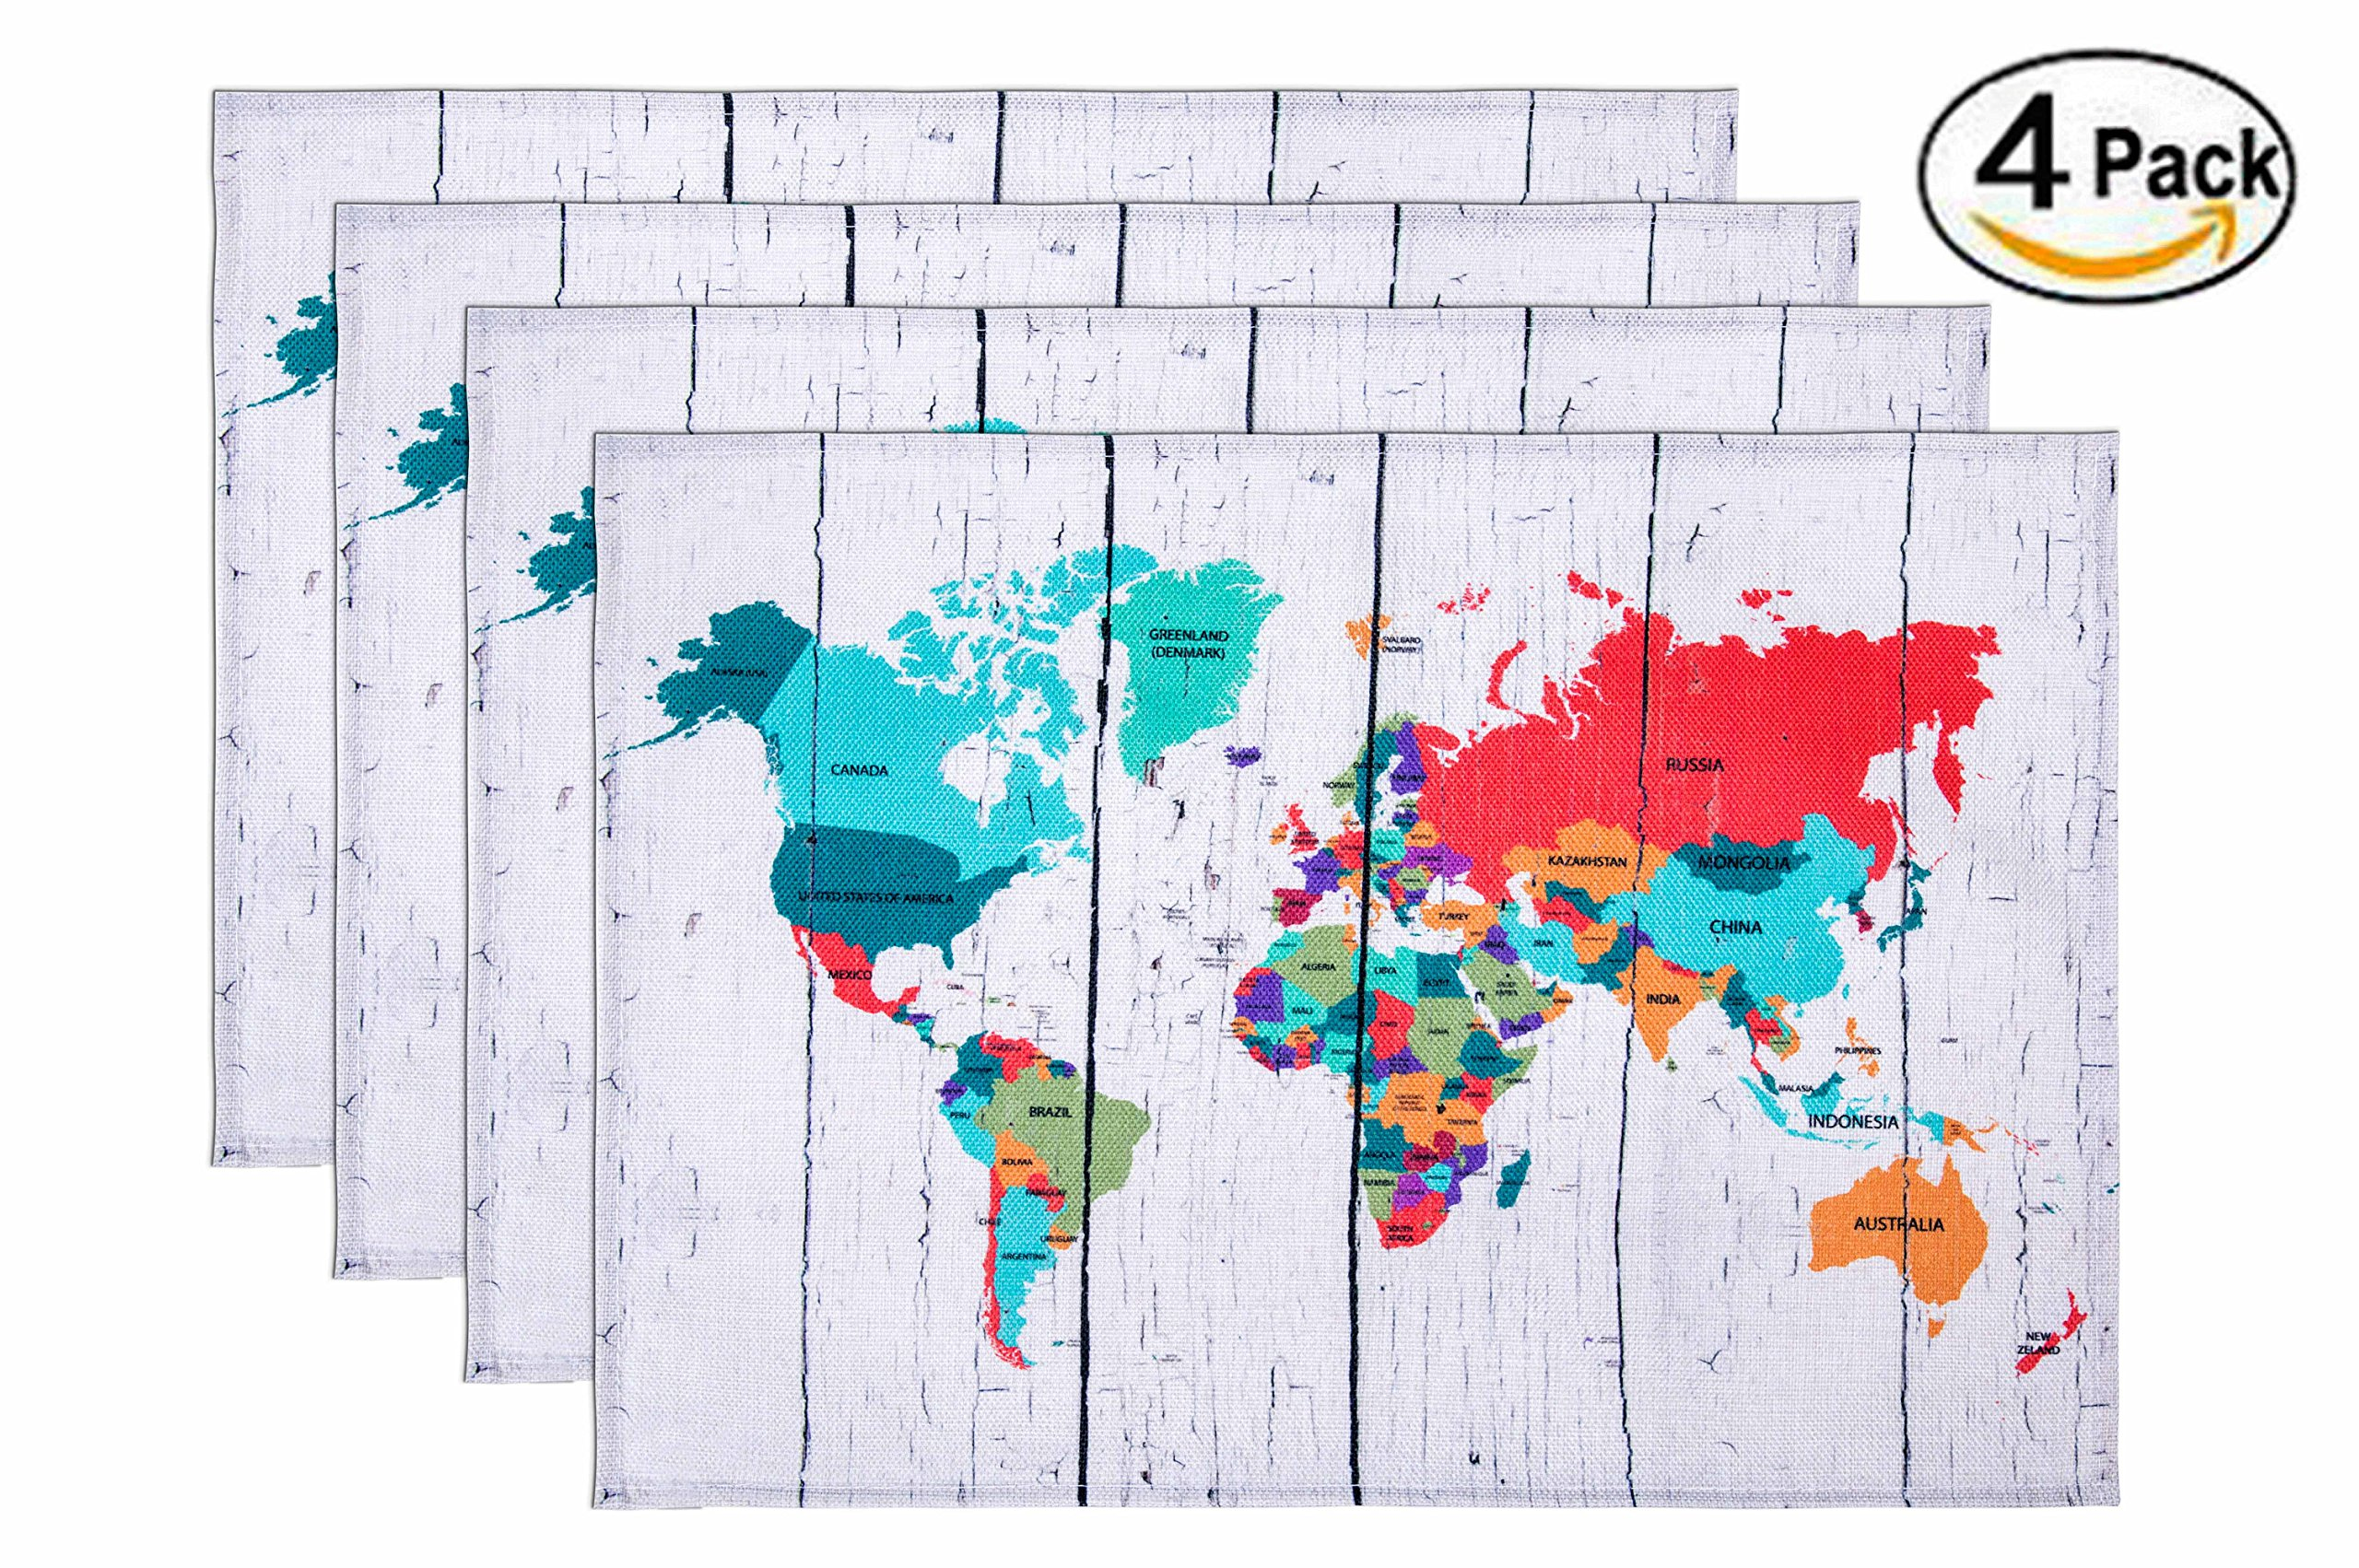 HONEYJOY Cotton Linen Placemats Set of 4 World Map Printing Textile Washable Heat-resistant Non-slip Colourfast Decorative Rectangle Dining Table Mats for Home Kitchen Office Striped Beige (13'' x 17'')